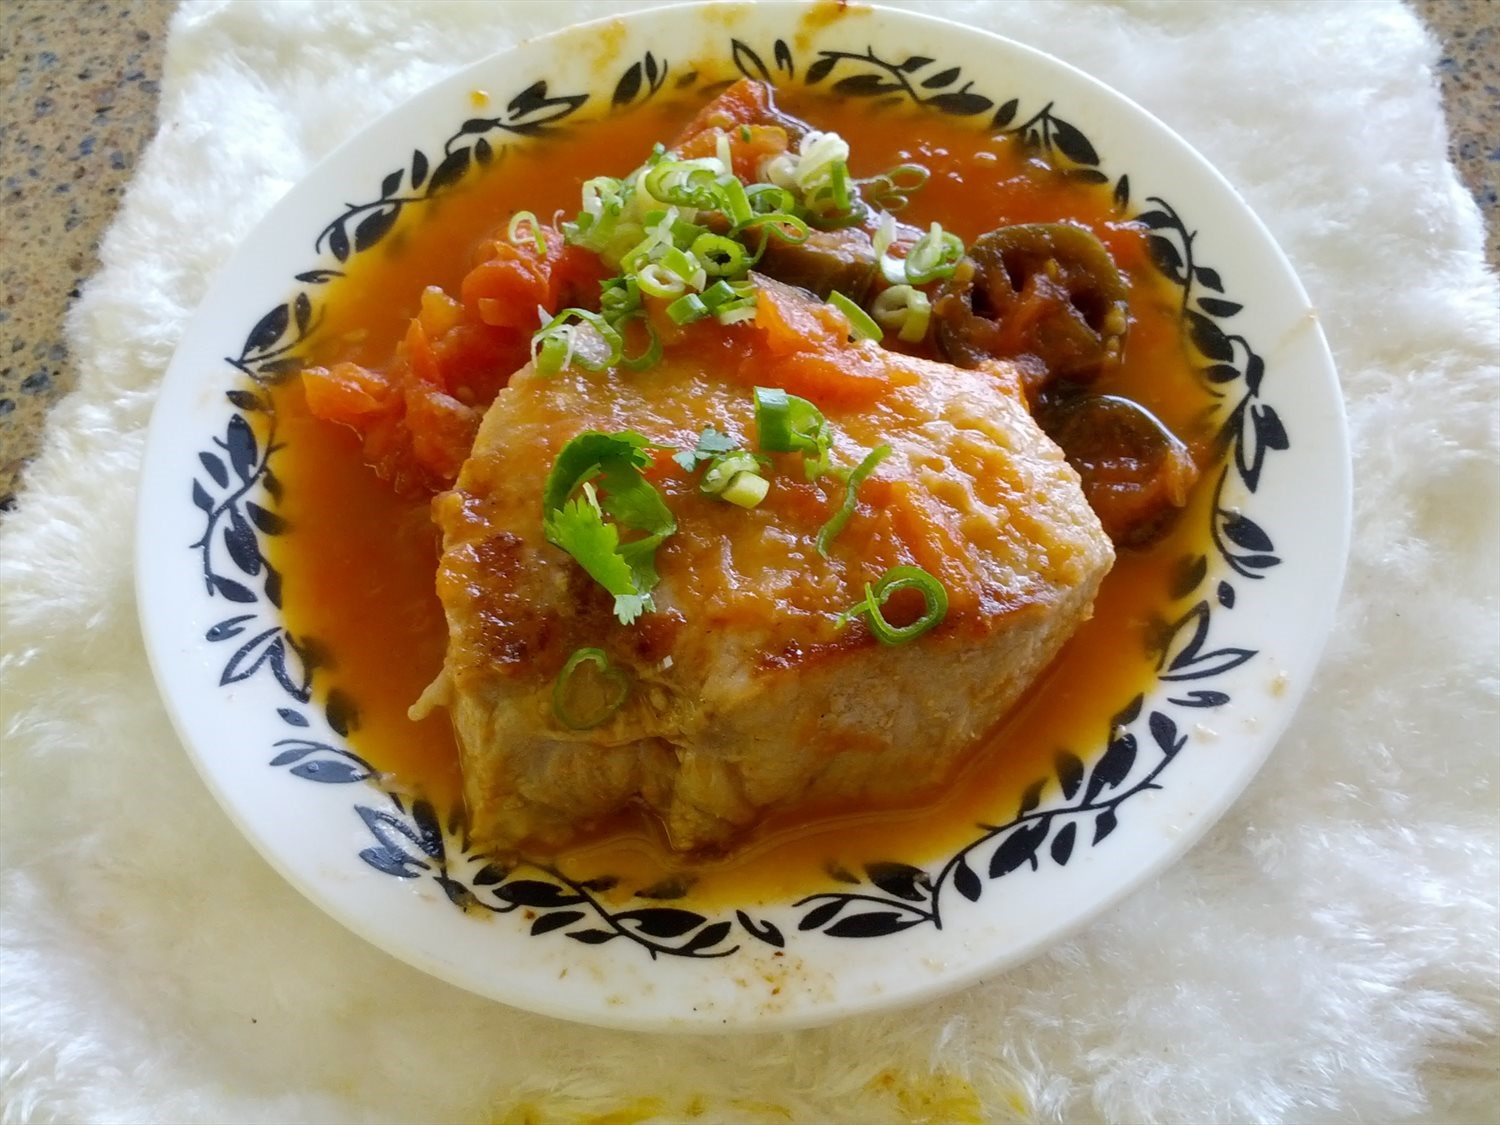 Spicy Tomato Pork Steak